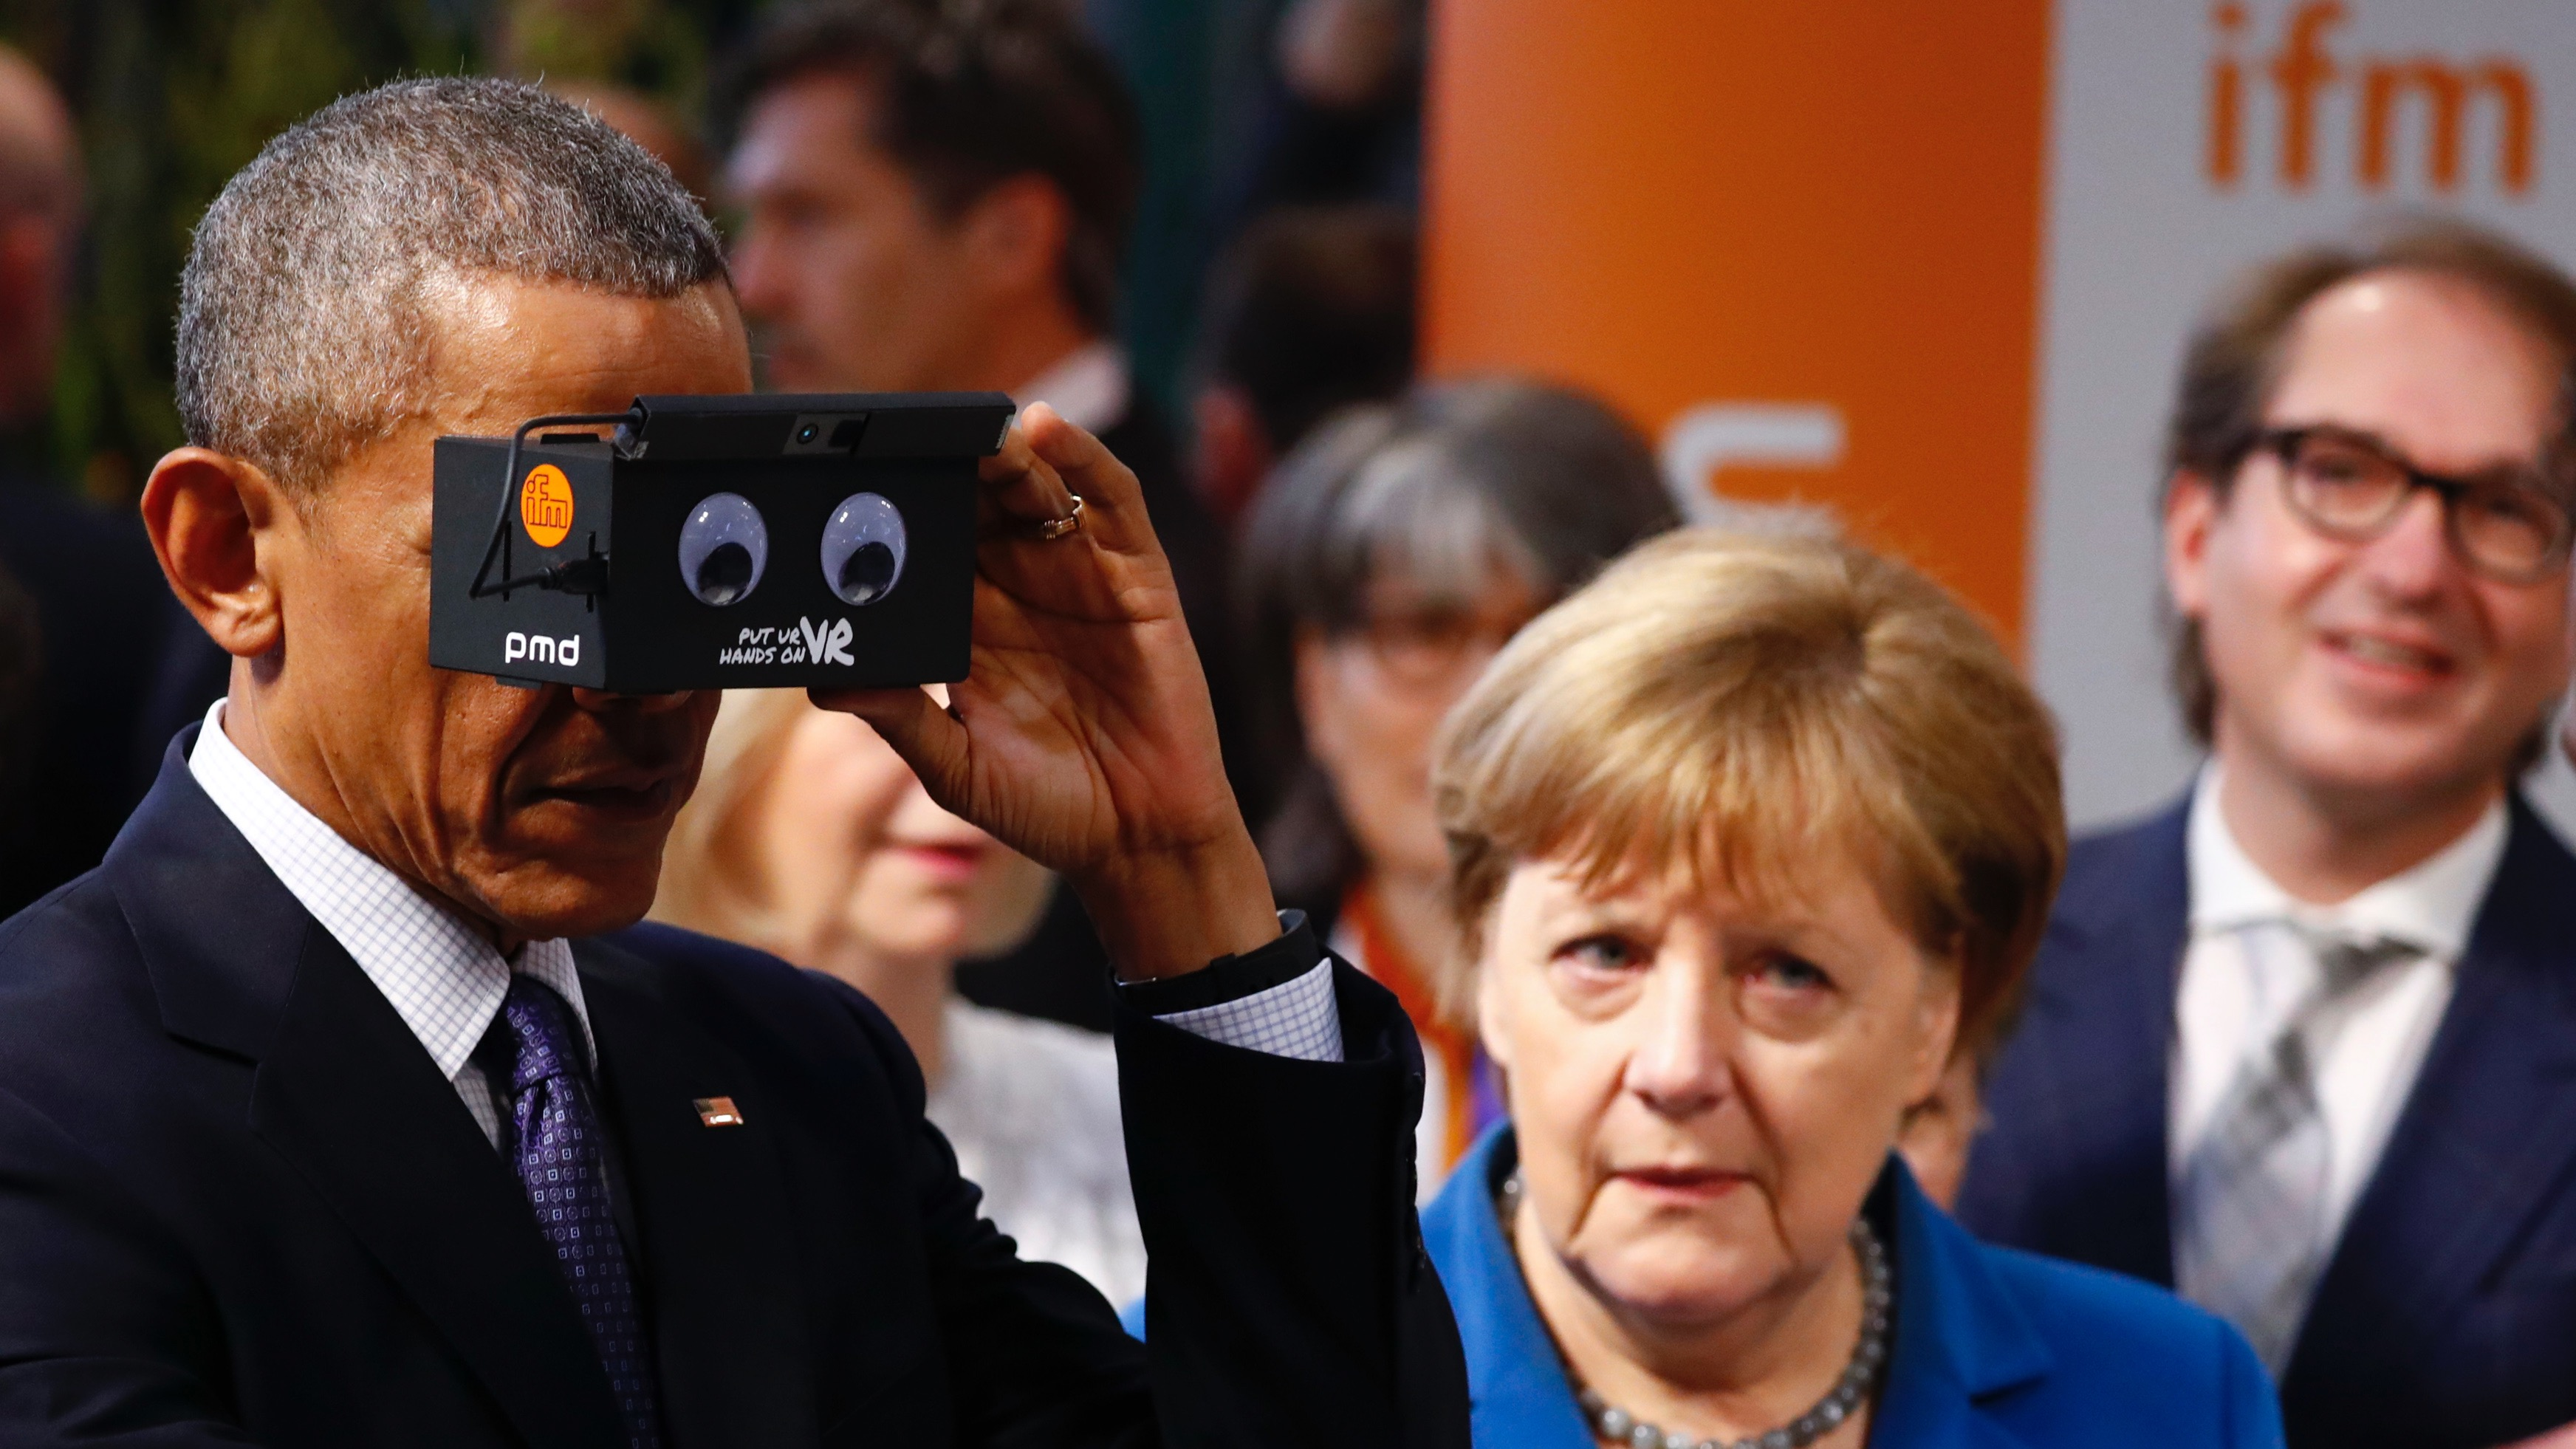 German Chancellor Angela Merkel stands with U.S. President Barack Obama as he tries the virtual reality device PMD during the opening tour of the Hannover Messe in Hanover, Germany April 25, 2016.      REUTERS/Kai Pfaffenbach - RTX2BHTS